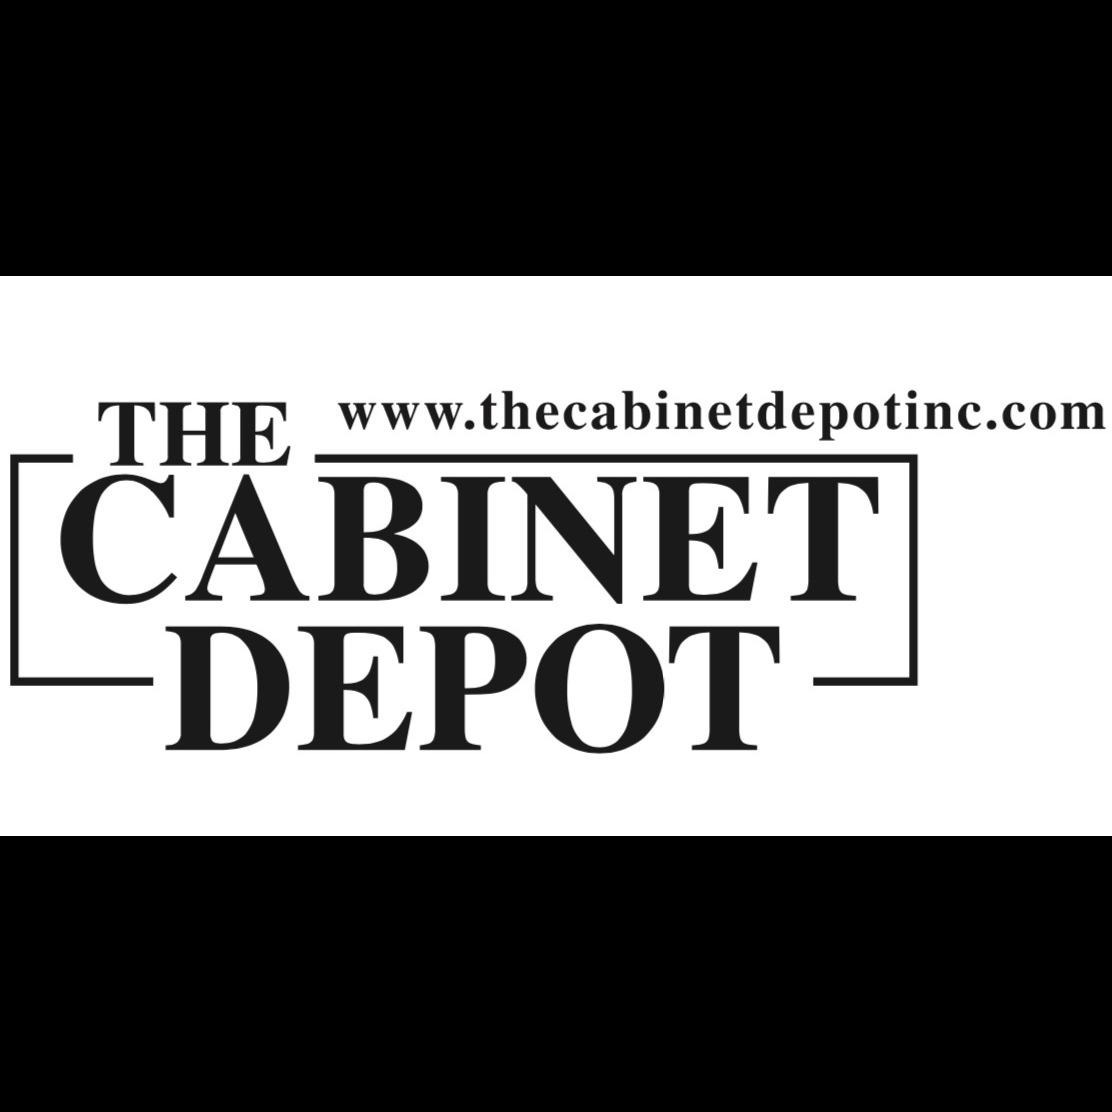 The Cabinet Depot